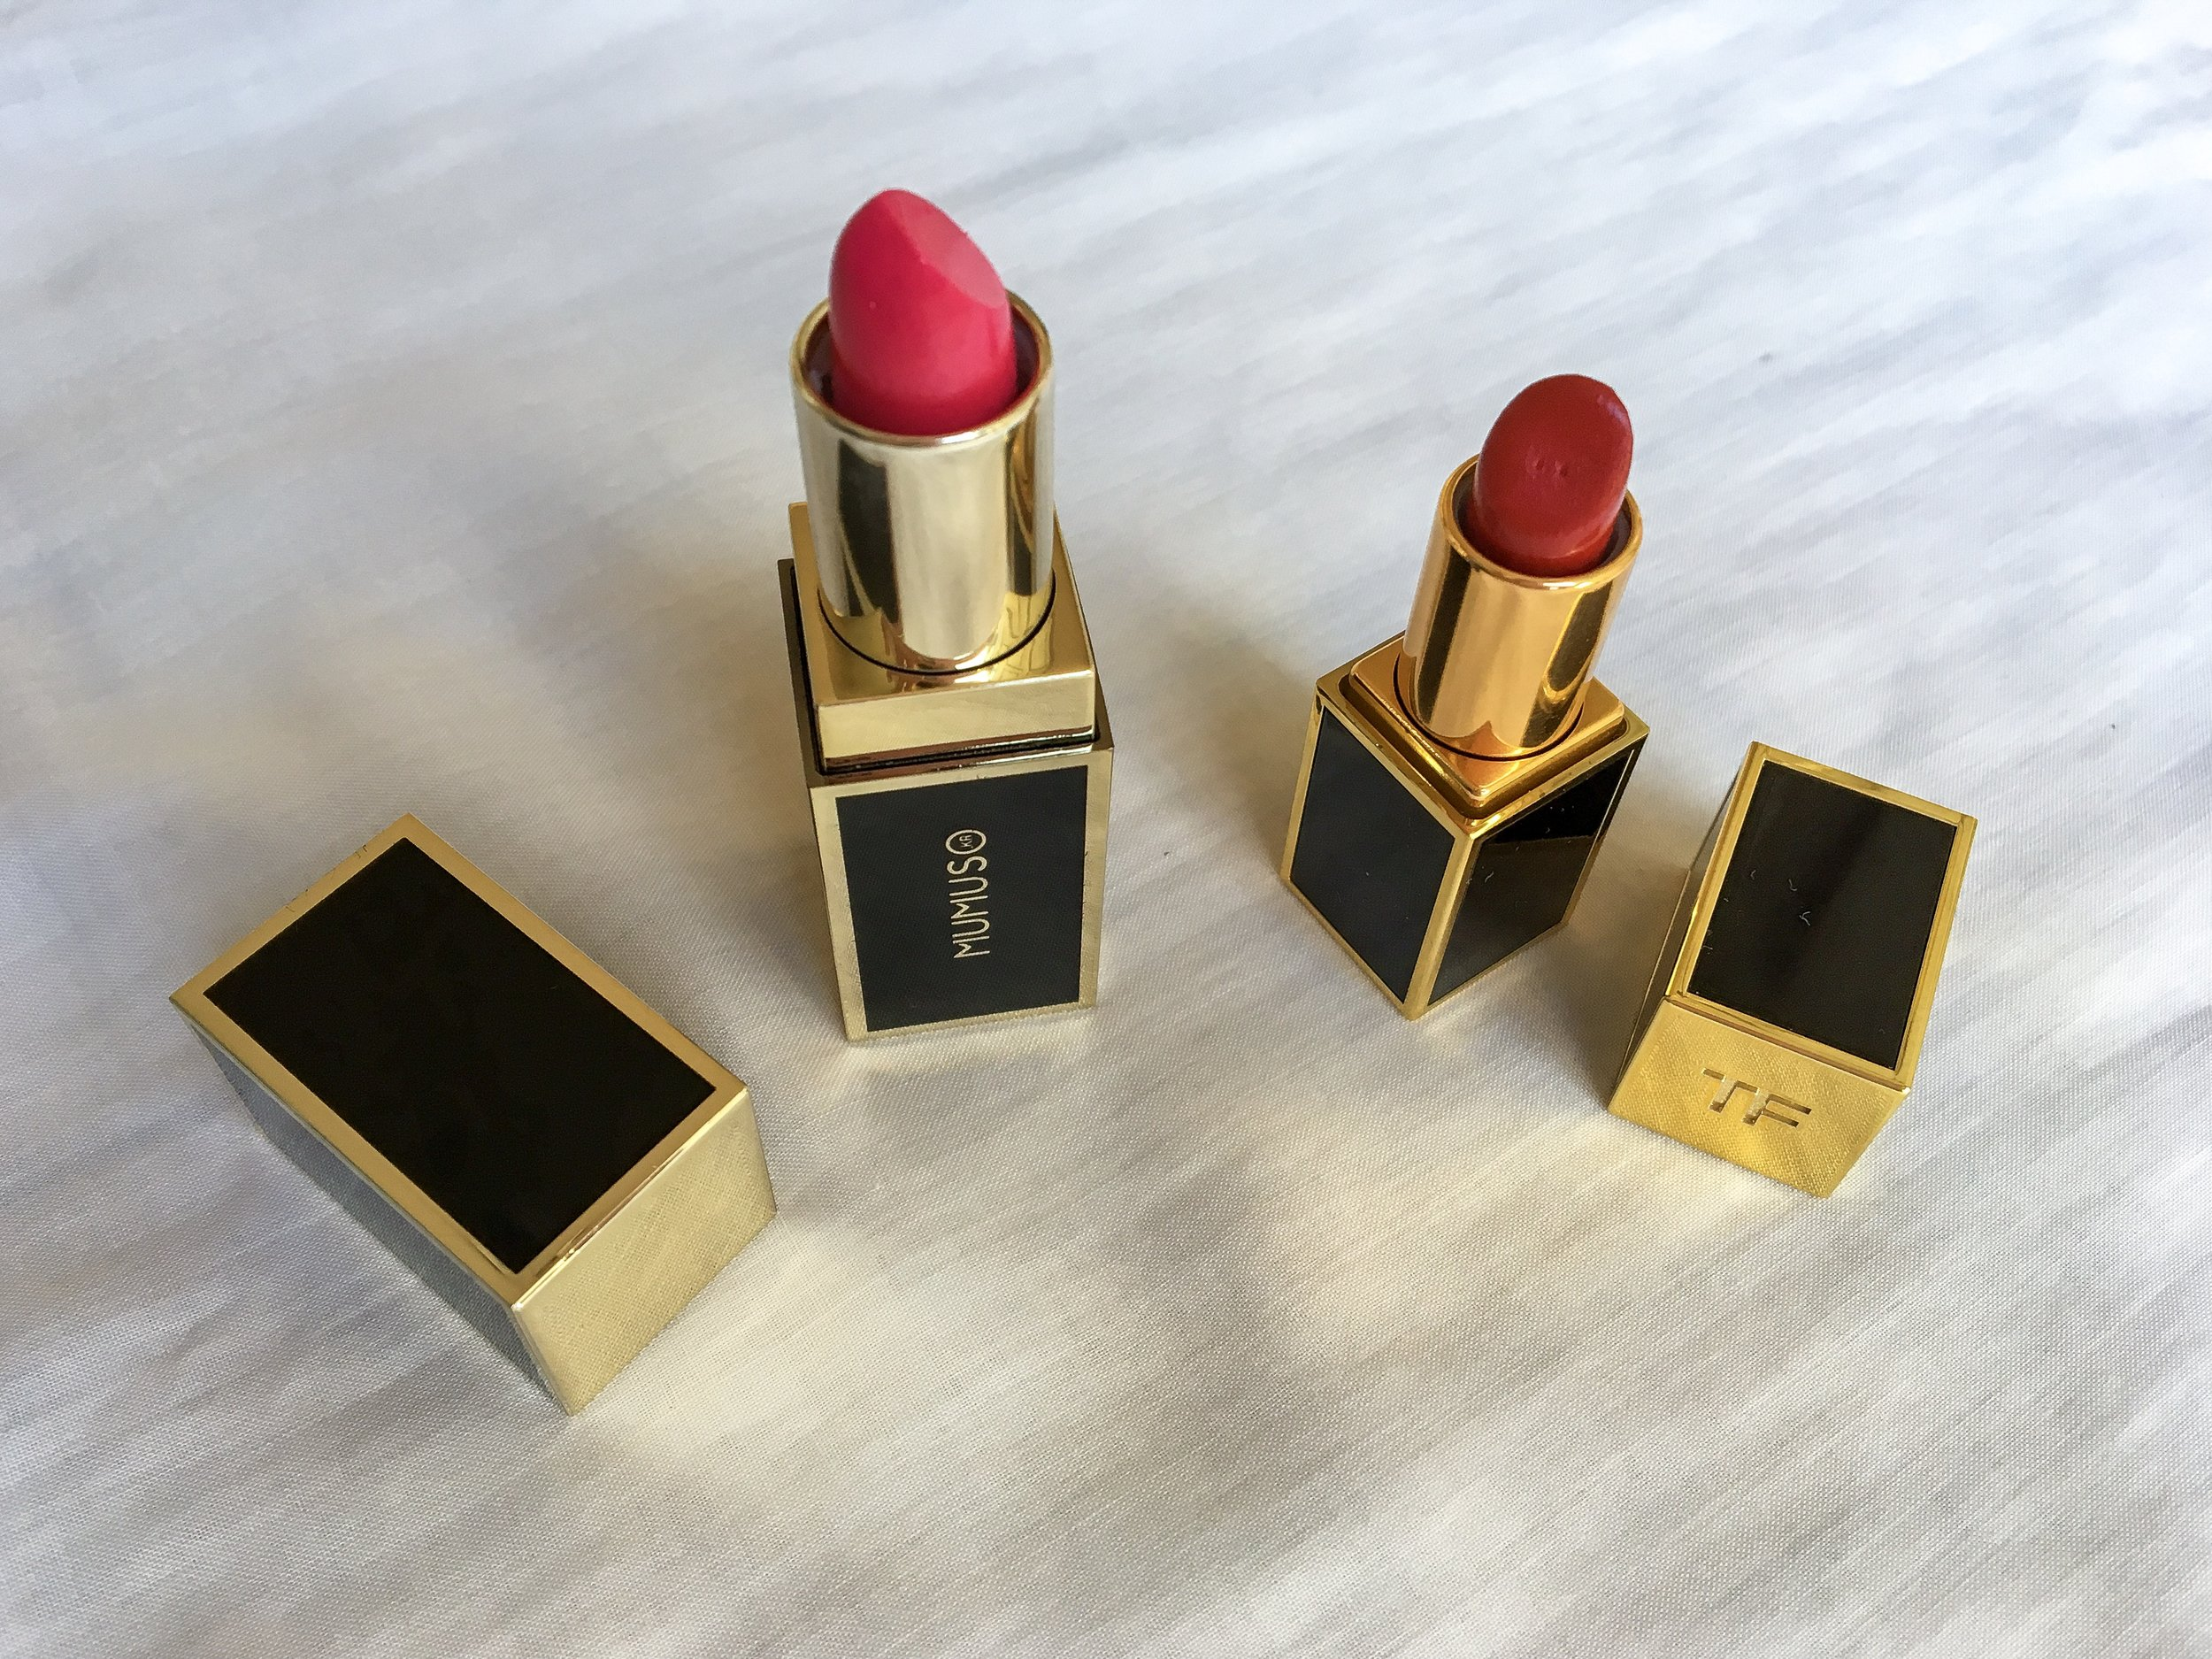 mumuso-vs-original-lipstick-tom-ford.jpg